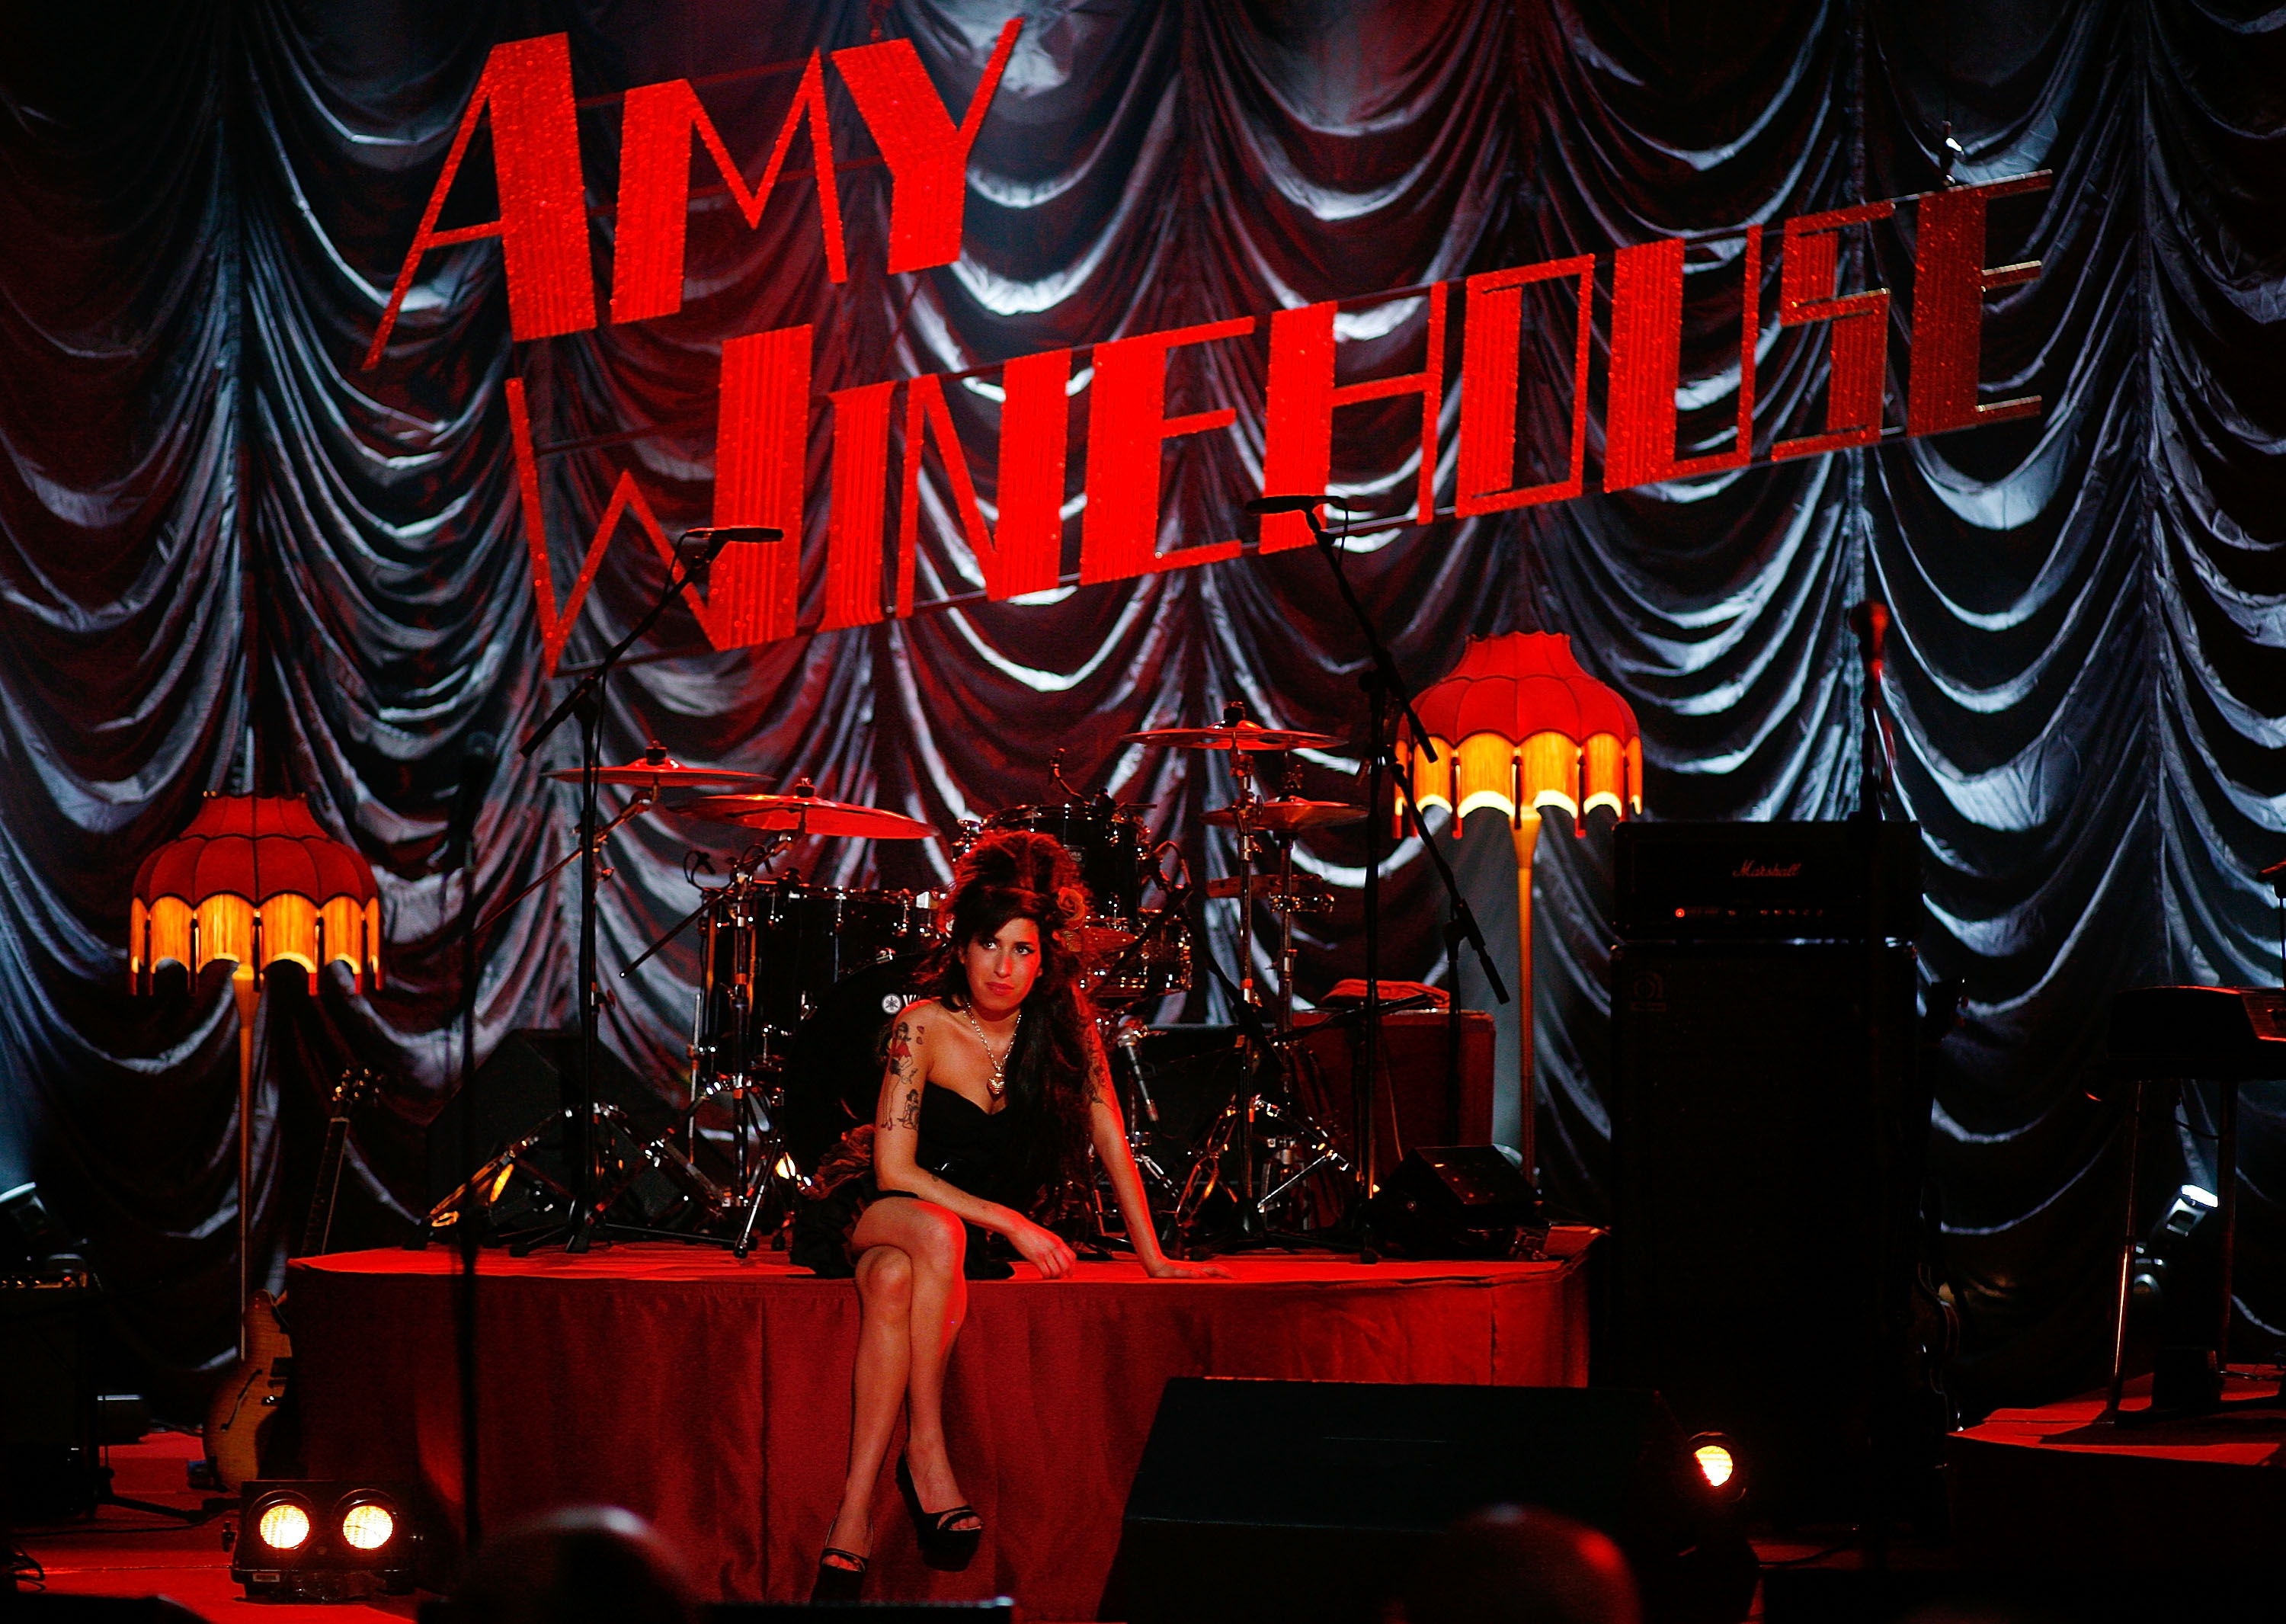 Proceeds from the hologram tour will go to The Amy Winehouse Foundation, which aids young people suffering from substance abuse. Winehouse's tragic death as a result of alcohol poisoning occurred in July 2011.